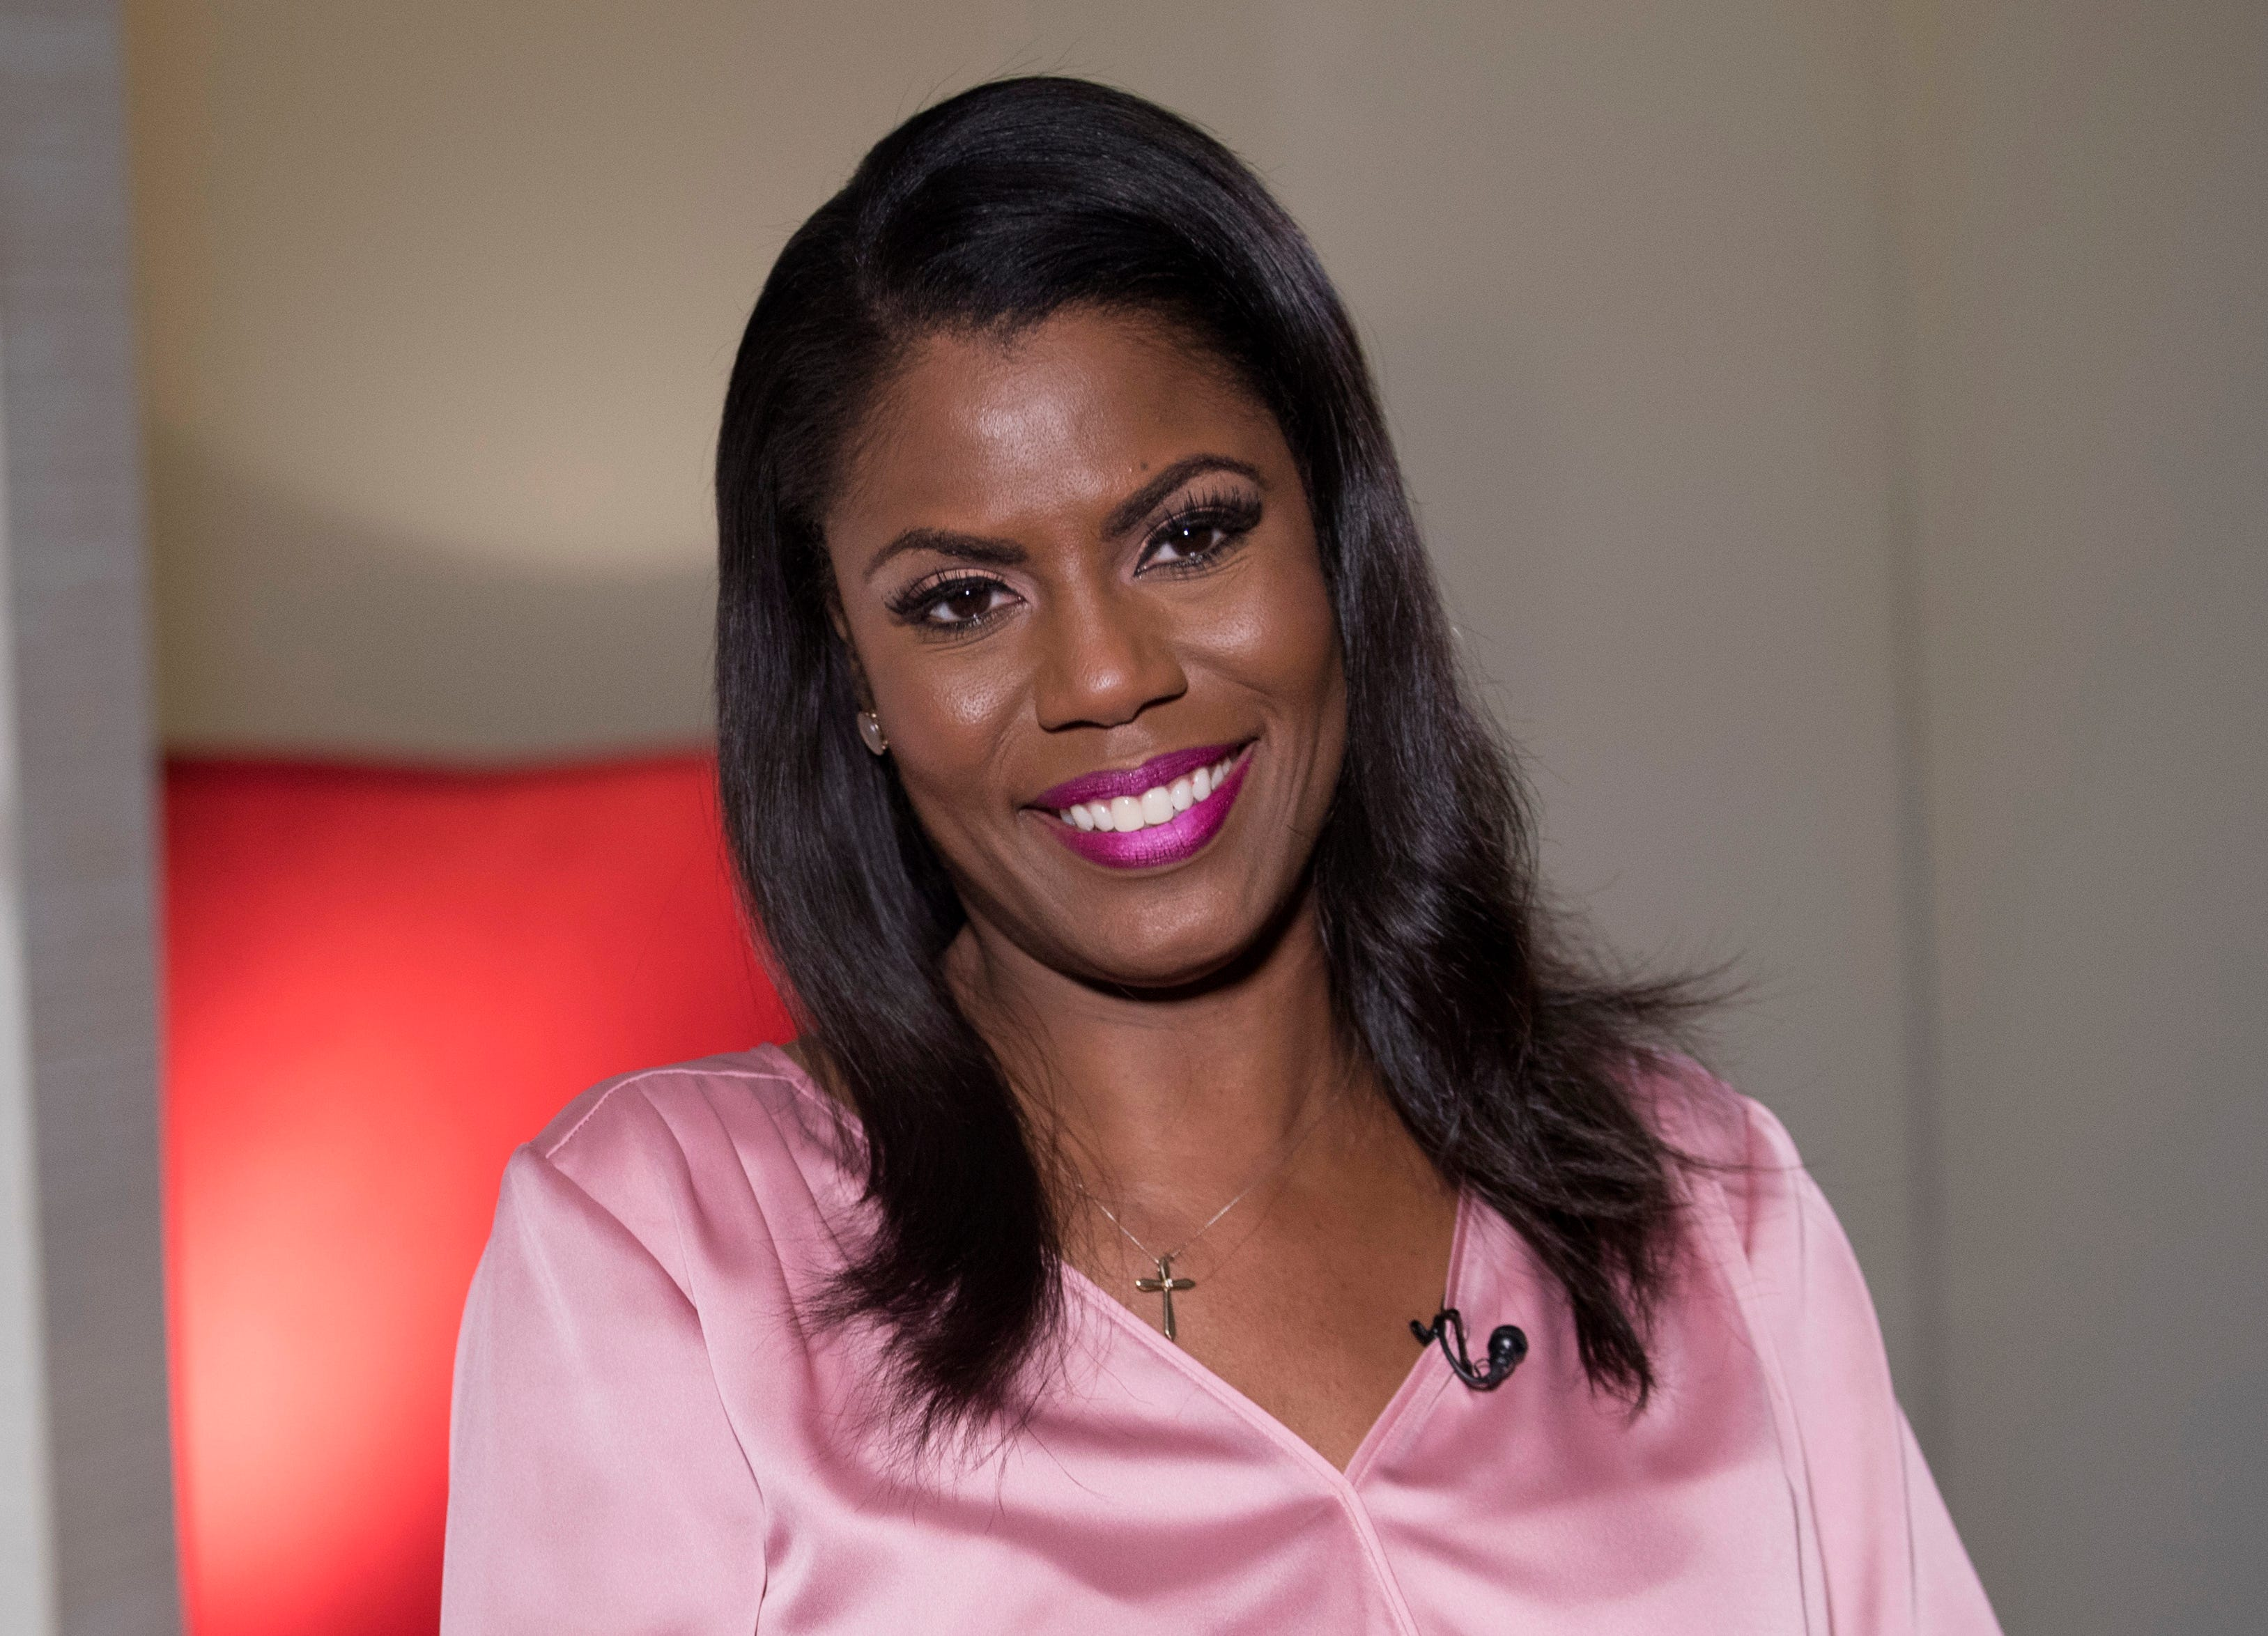 Im white and hookup a haitian men characteristics